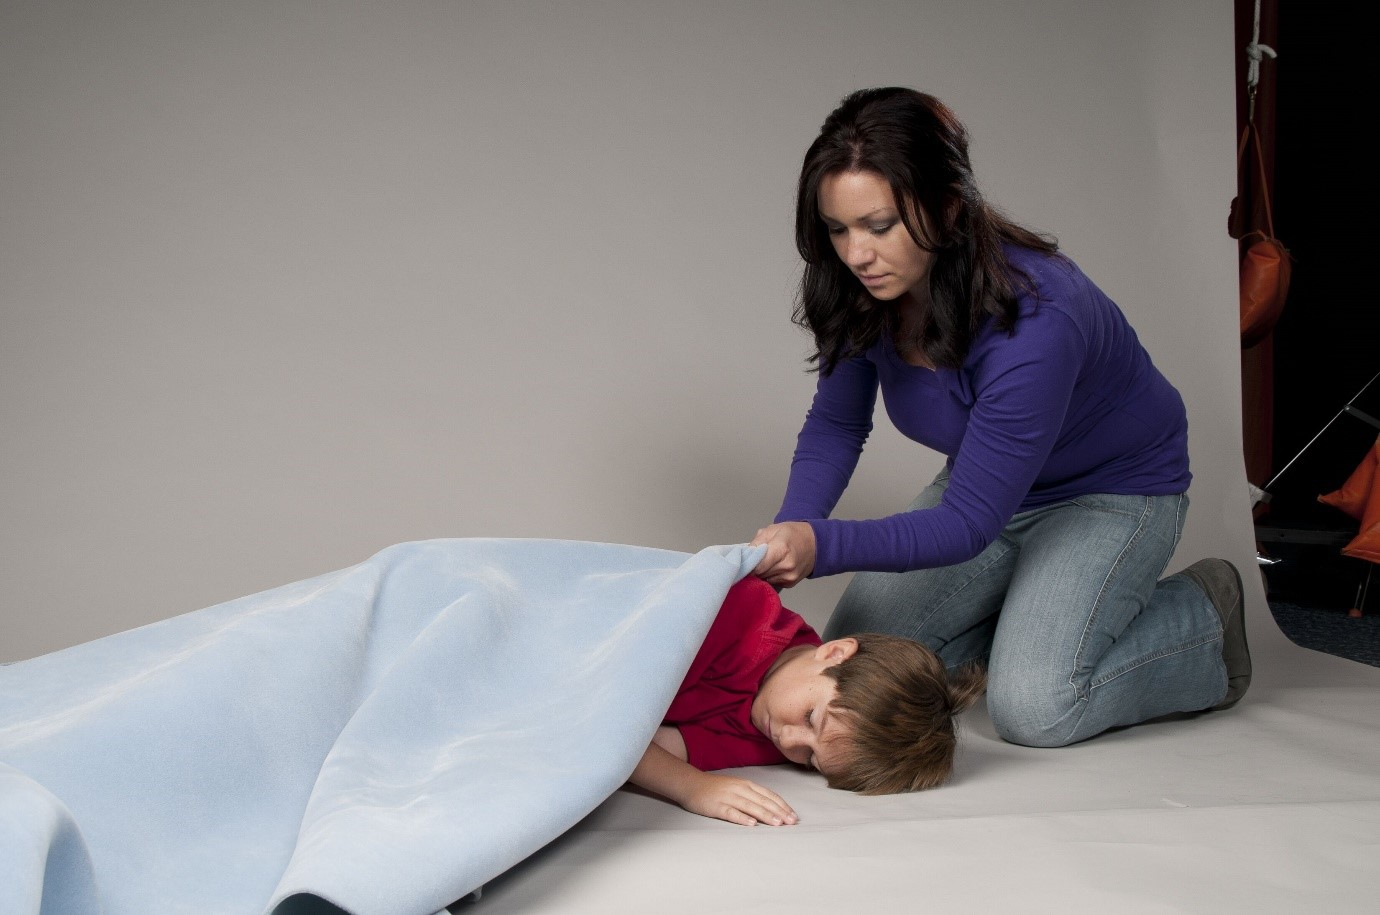 5 Ways to Ensure Your Children Stay Safe